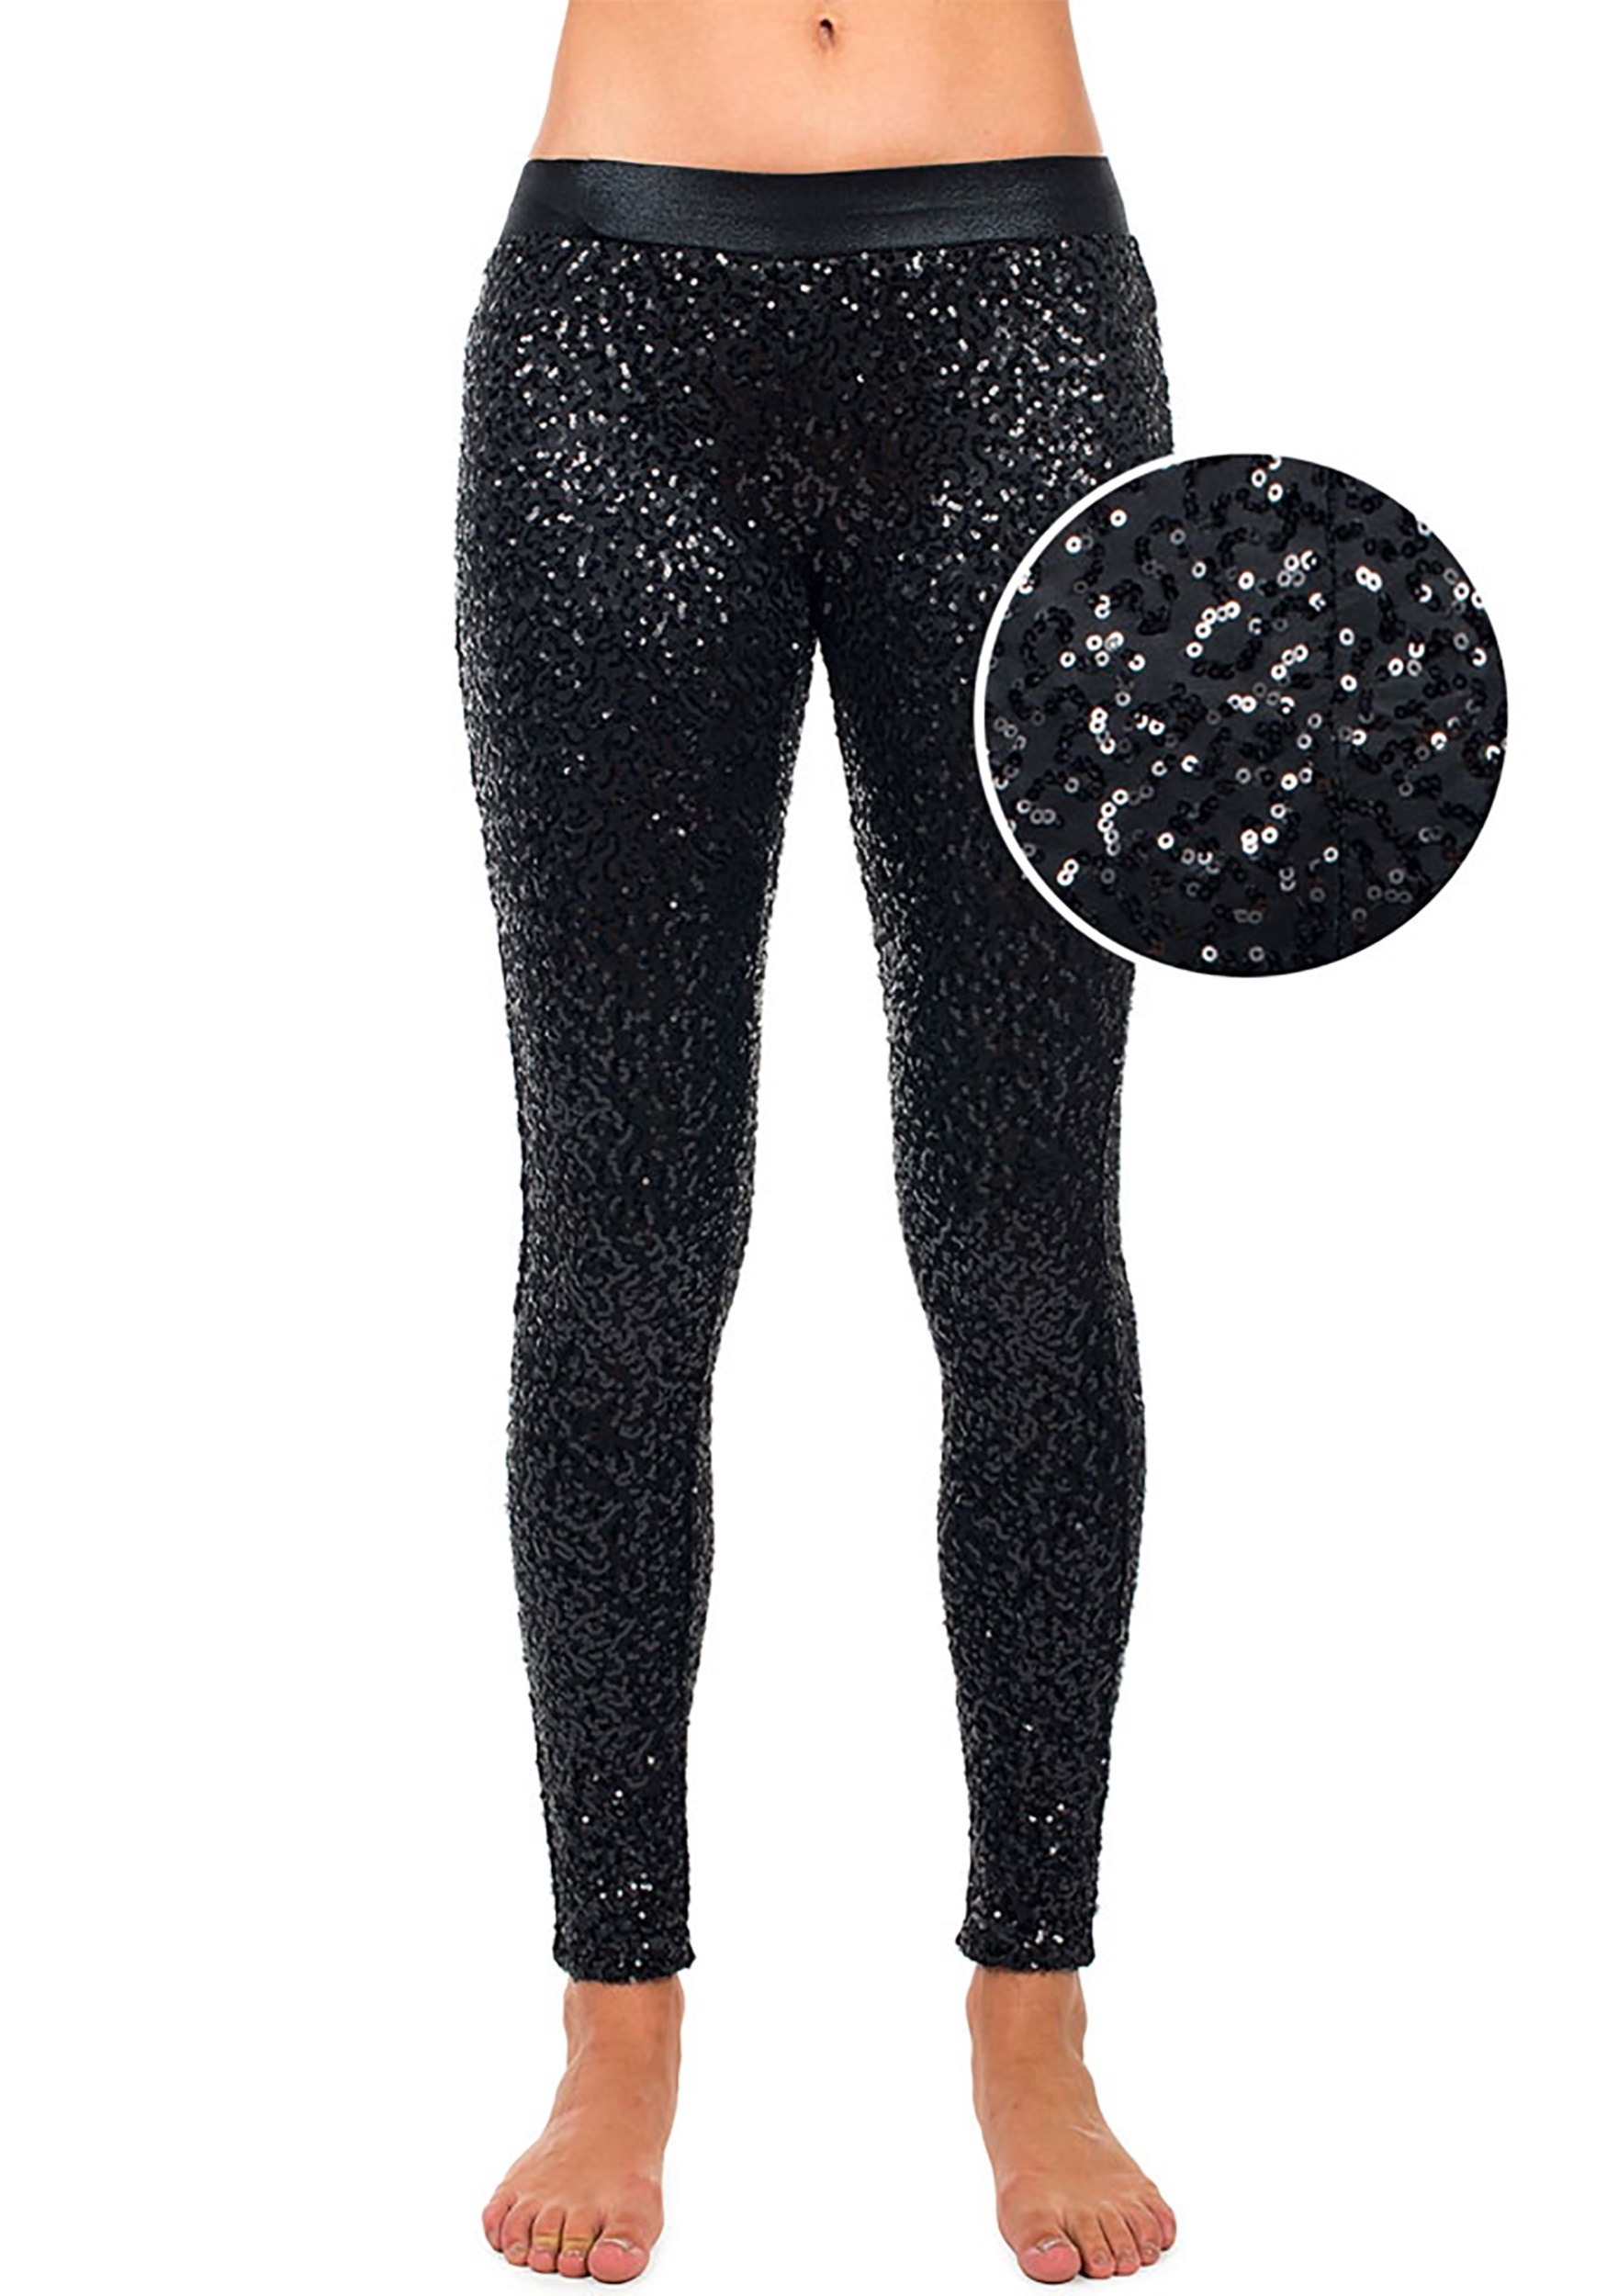 0f00089c74e11 Women's Tipsy Elves Black Sequin Leggings